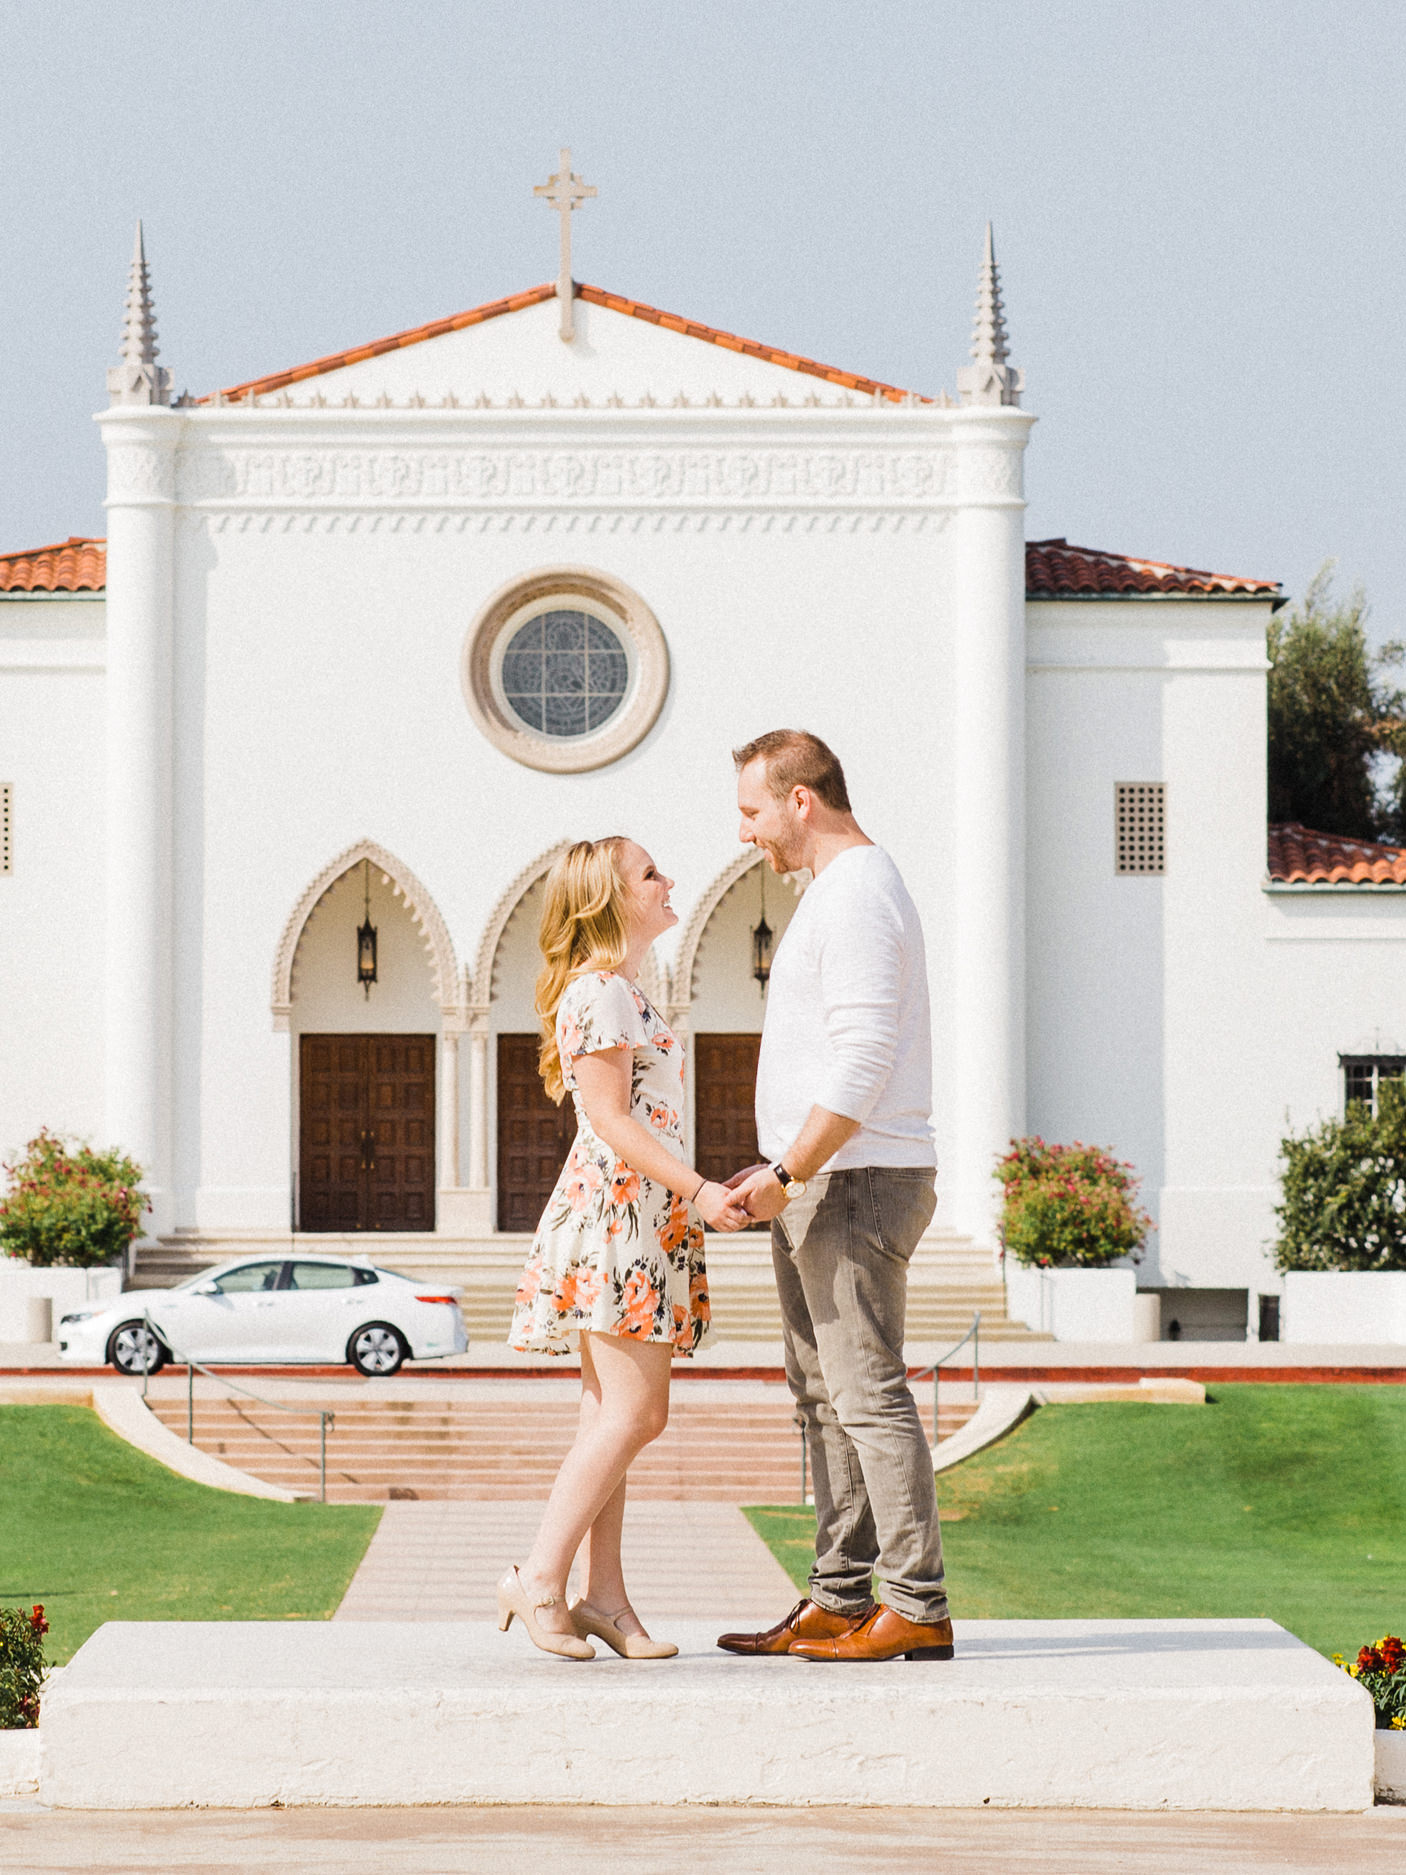 Loyola Marymount University, LMU, Engagement Wedding Photographs, Engagement Photographs Loyola Marymount University, LMU,  Engagement Wedding Photography, Engagement Photography, Loyola Marymount University, LMU,  Engagement Wedding Photographer, Engagement Photographer, Loyola Marymount University, LMU,  Engagement Wedding Photos, Engagement Photos from Fine Art Family Portrait Photographer, engagement photographer and Wedding Photographer Daniel Doty Photography.